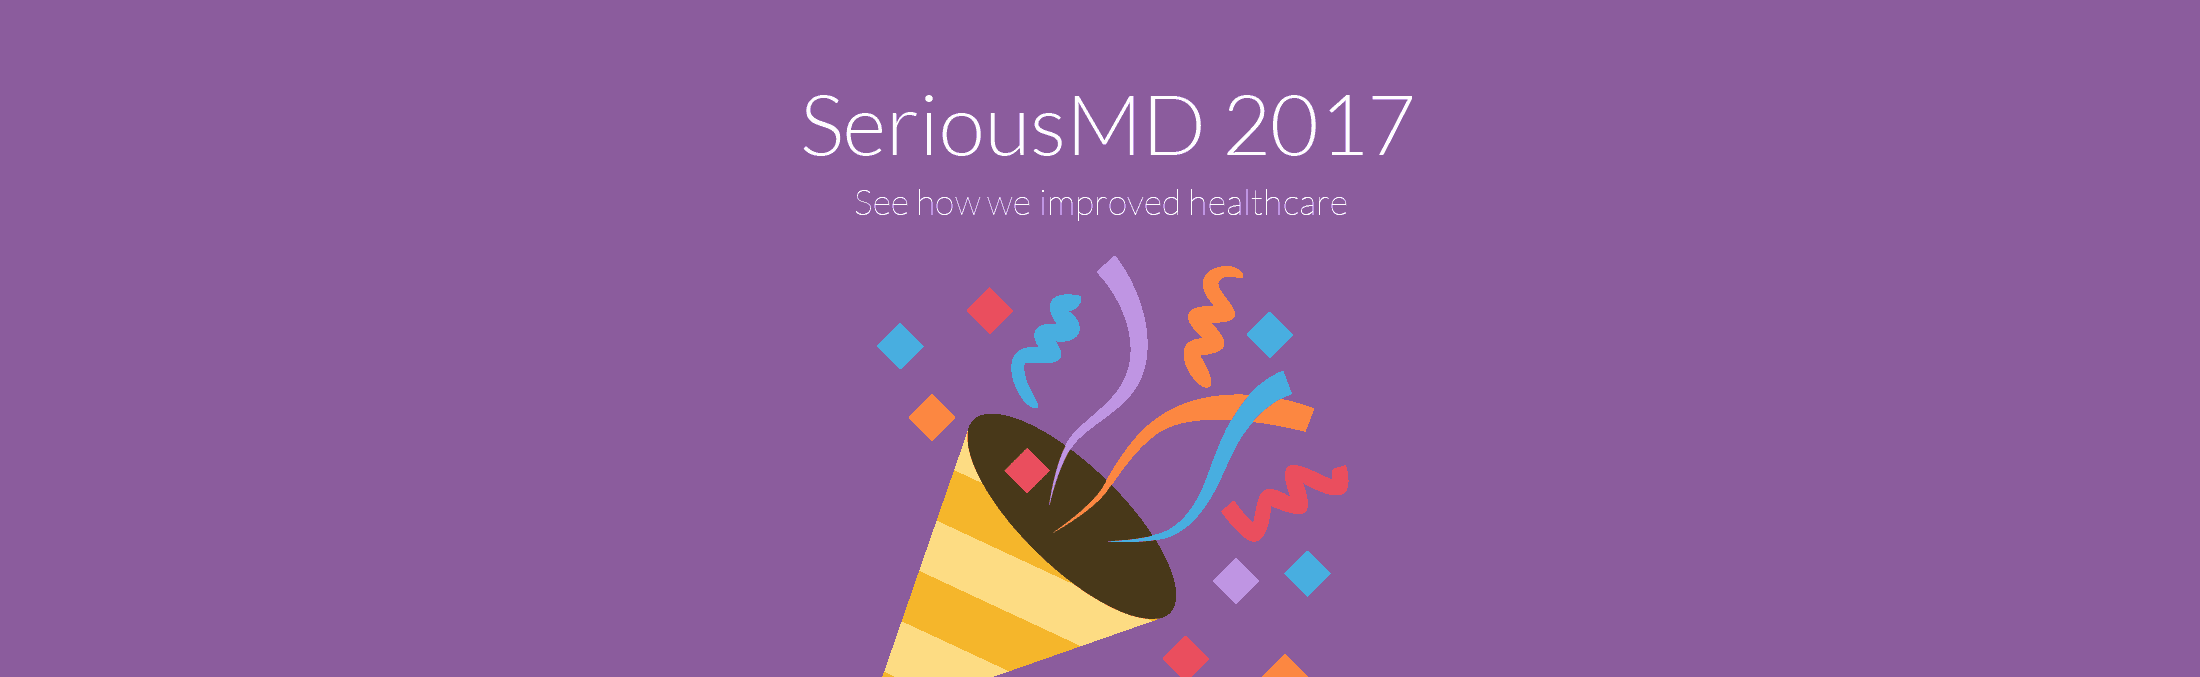 SeriousMD 2017 to 2018